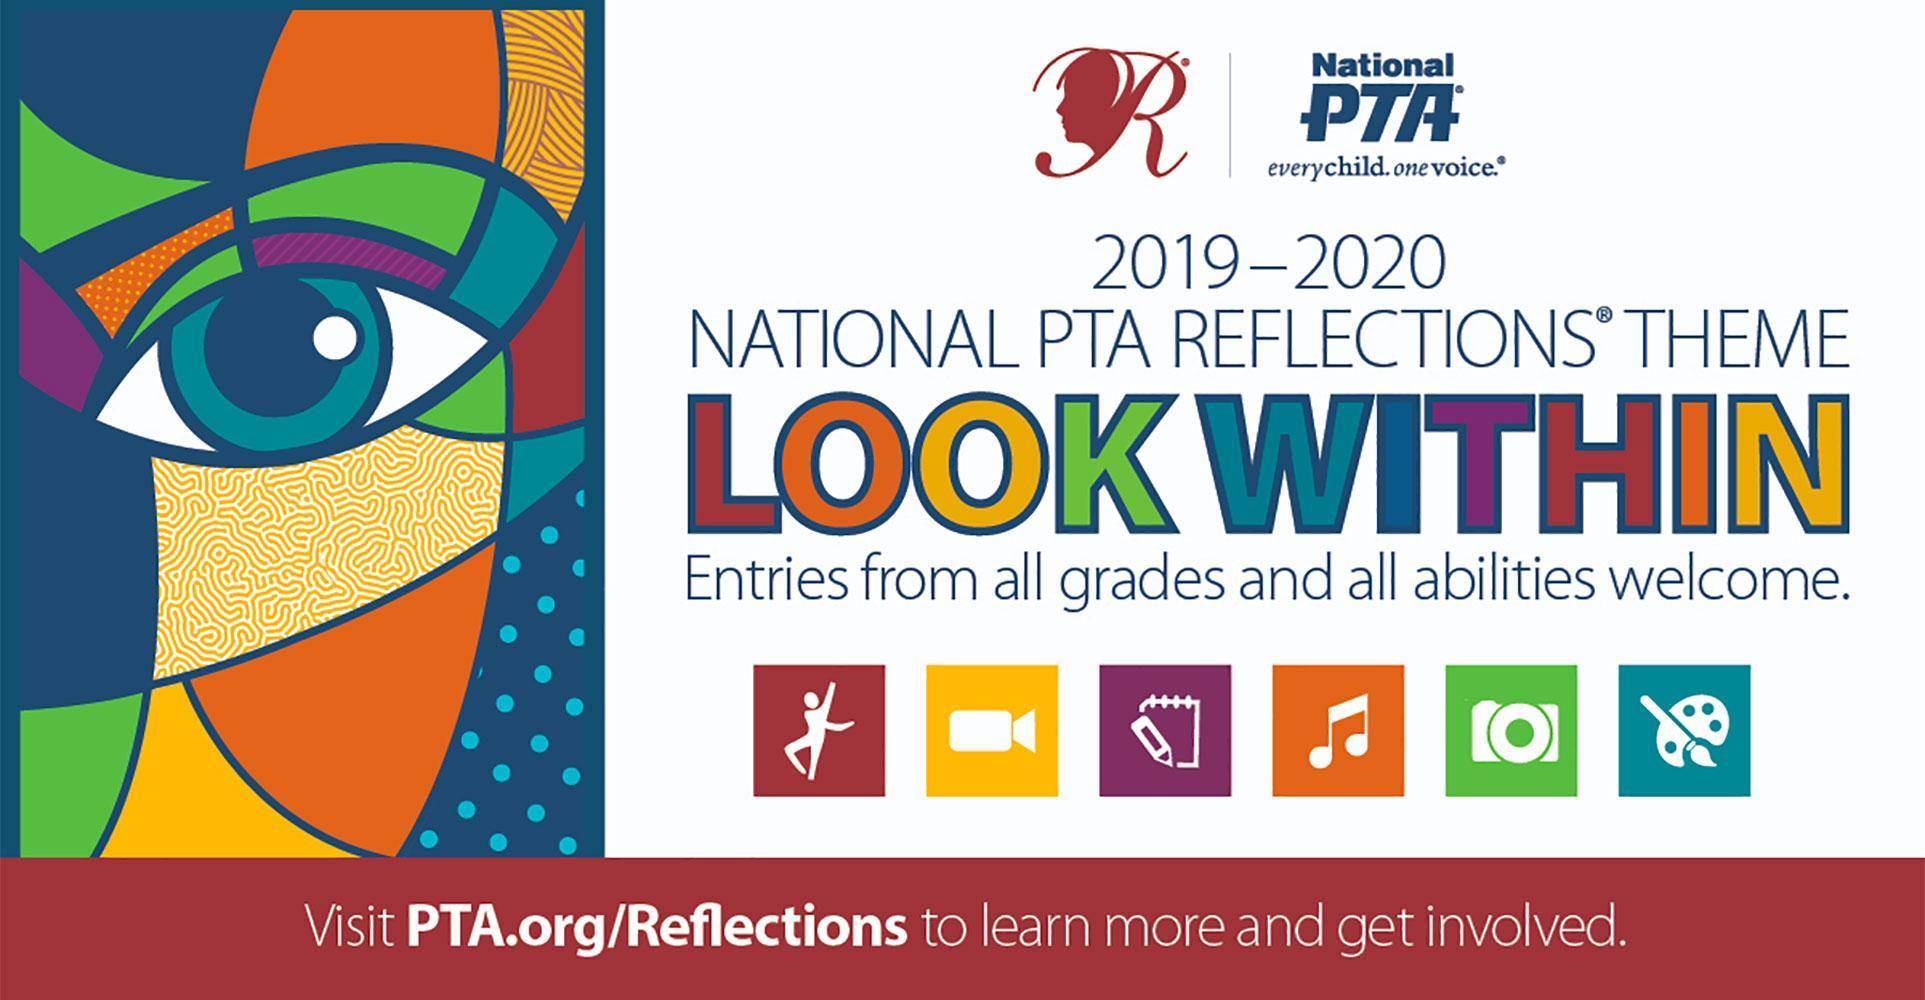 PTA Reflections 2019-2020: Look Within